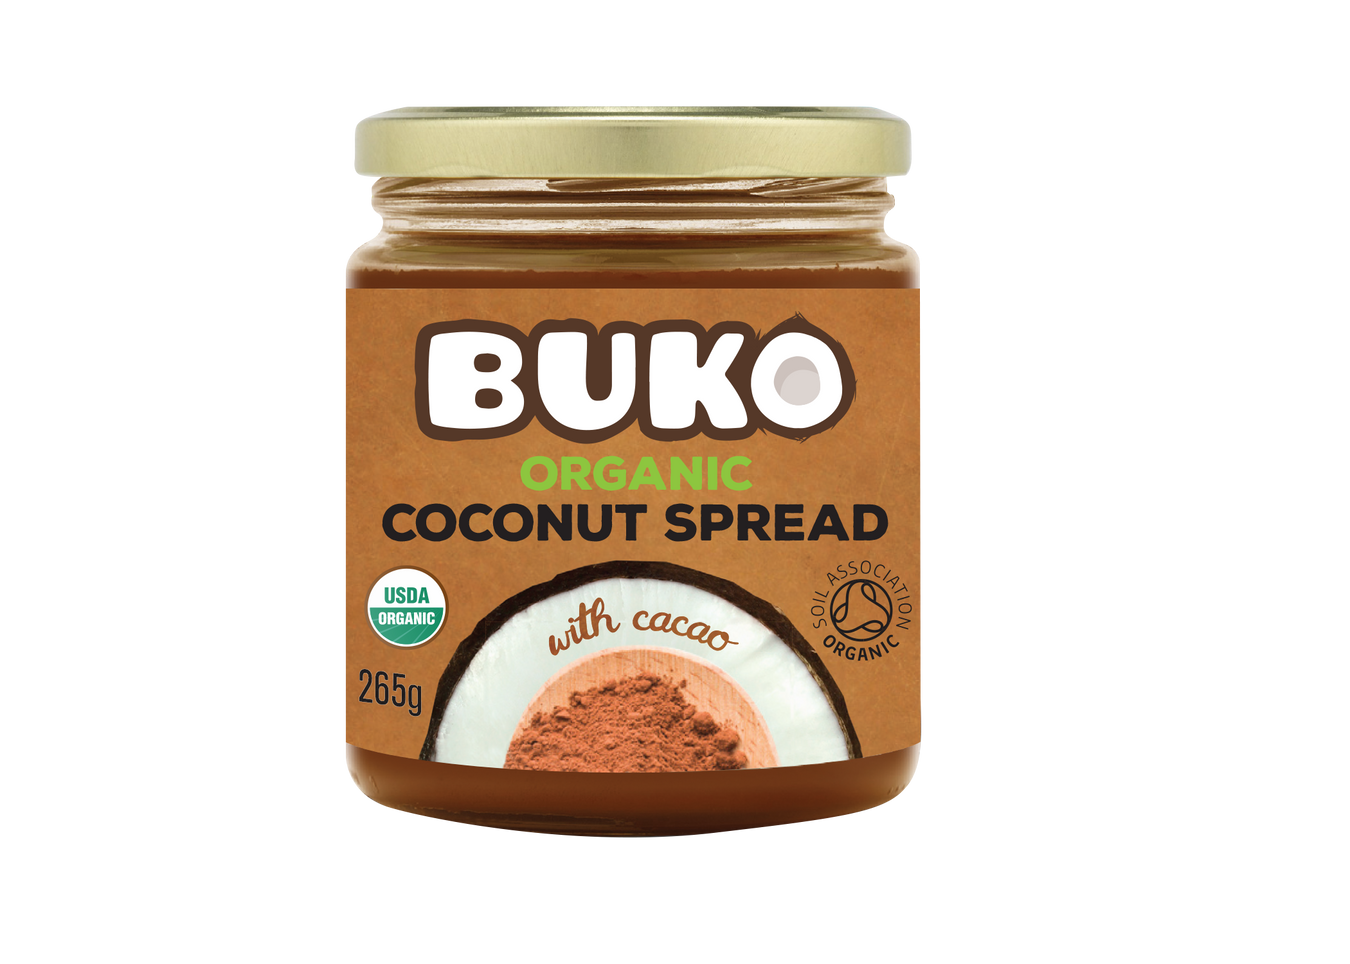 buko-organic-coconut-spread-with-cacao-plant-based